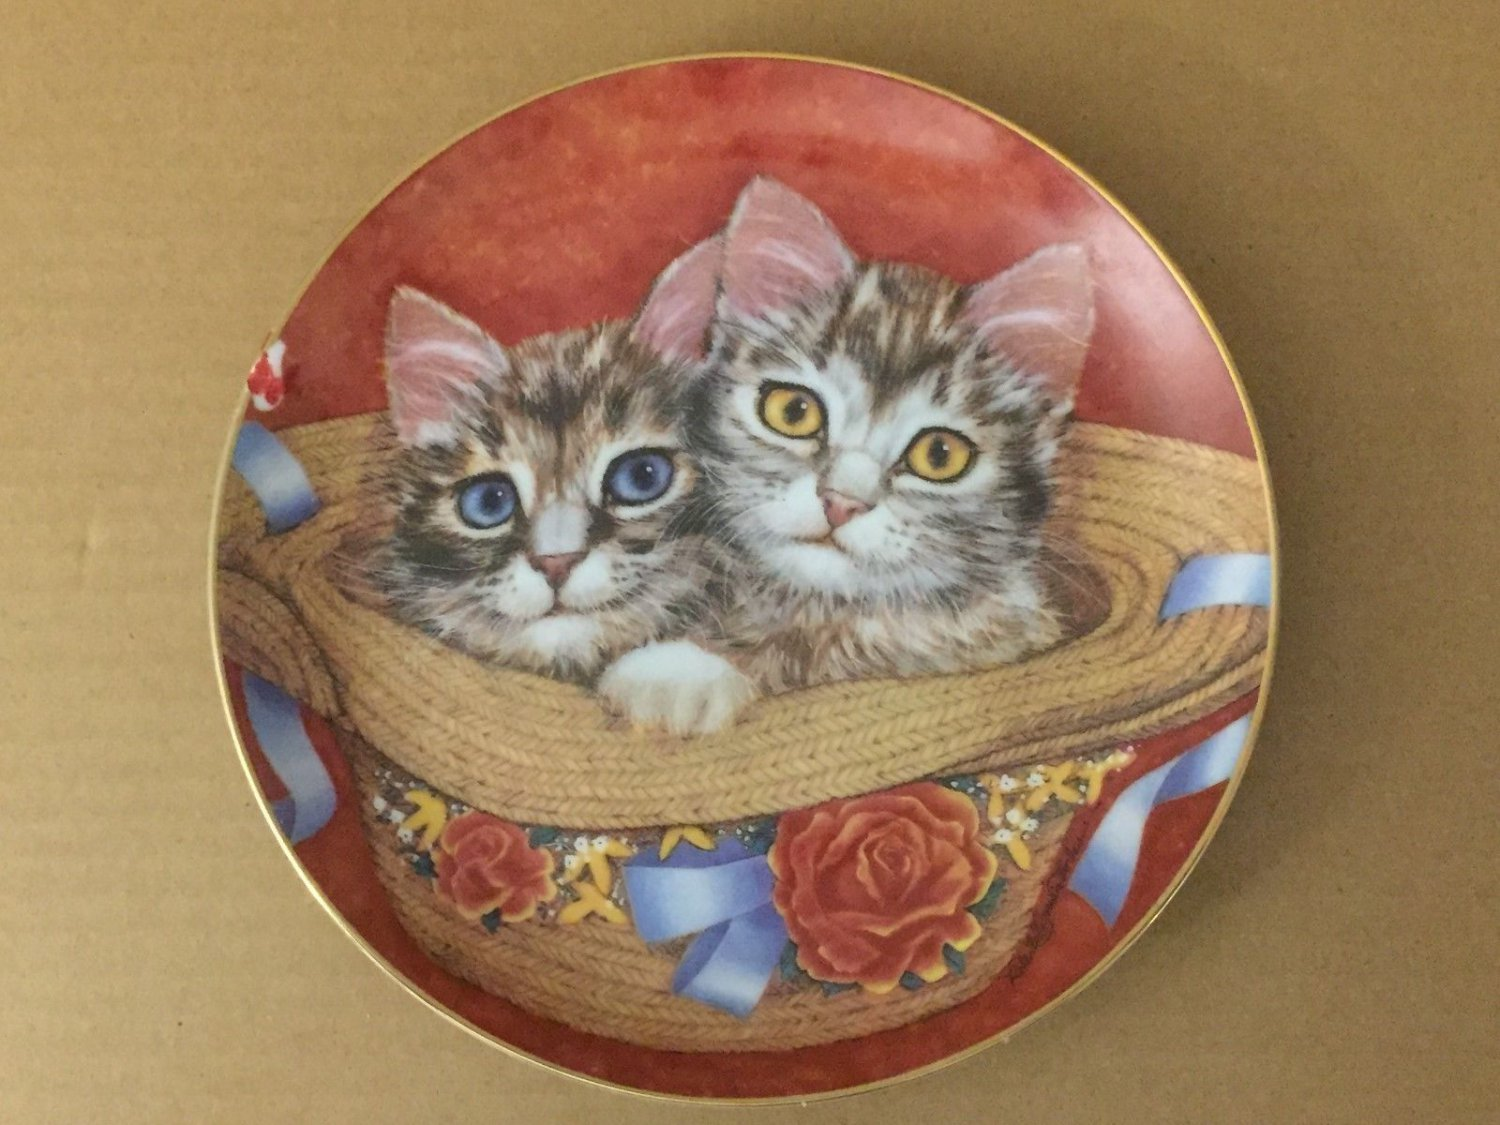 Primary image for Toby And Tammy PURRFECT PAIRS Cat Kitten Robert Guzman-Forbes Danbury Mint Plate